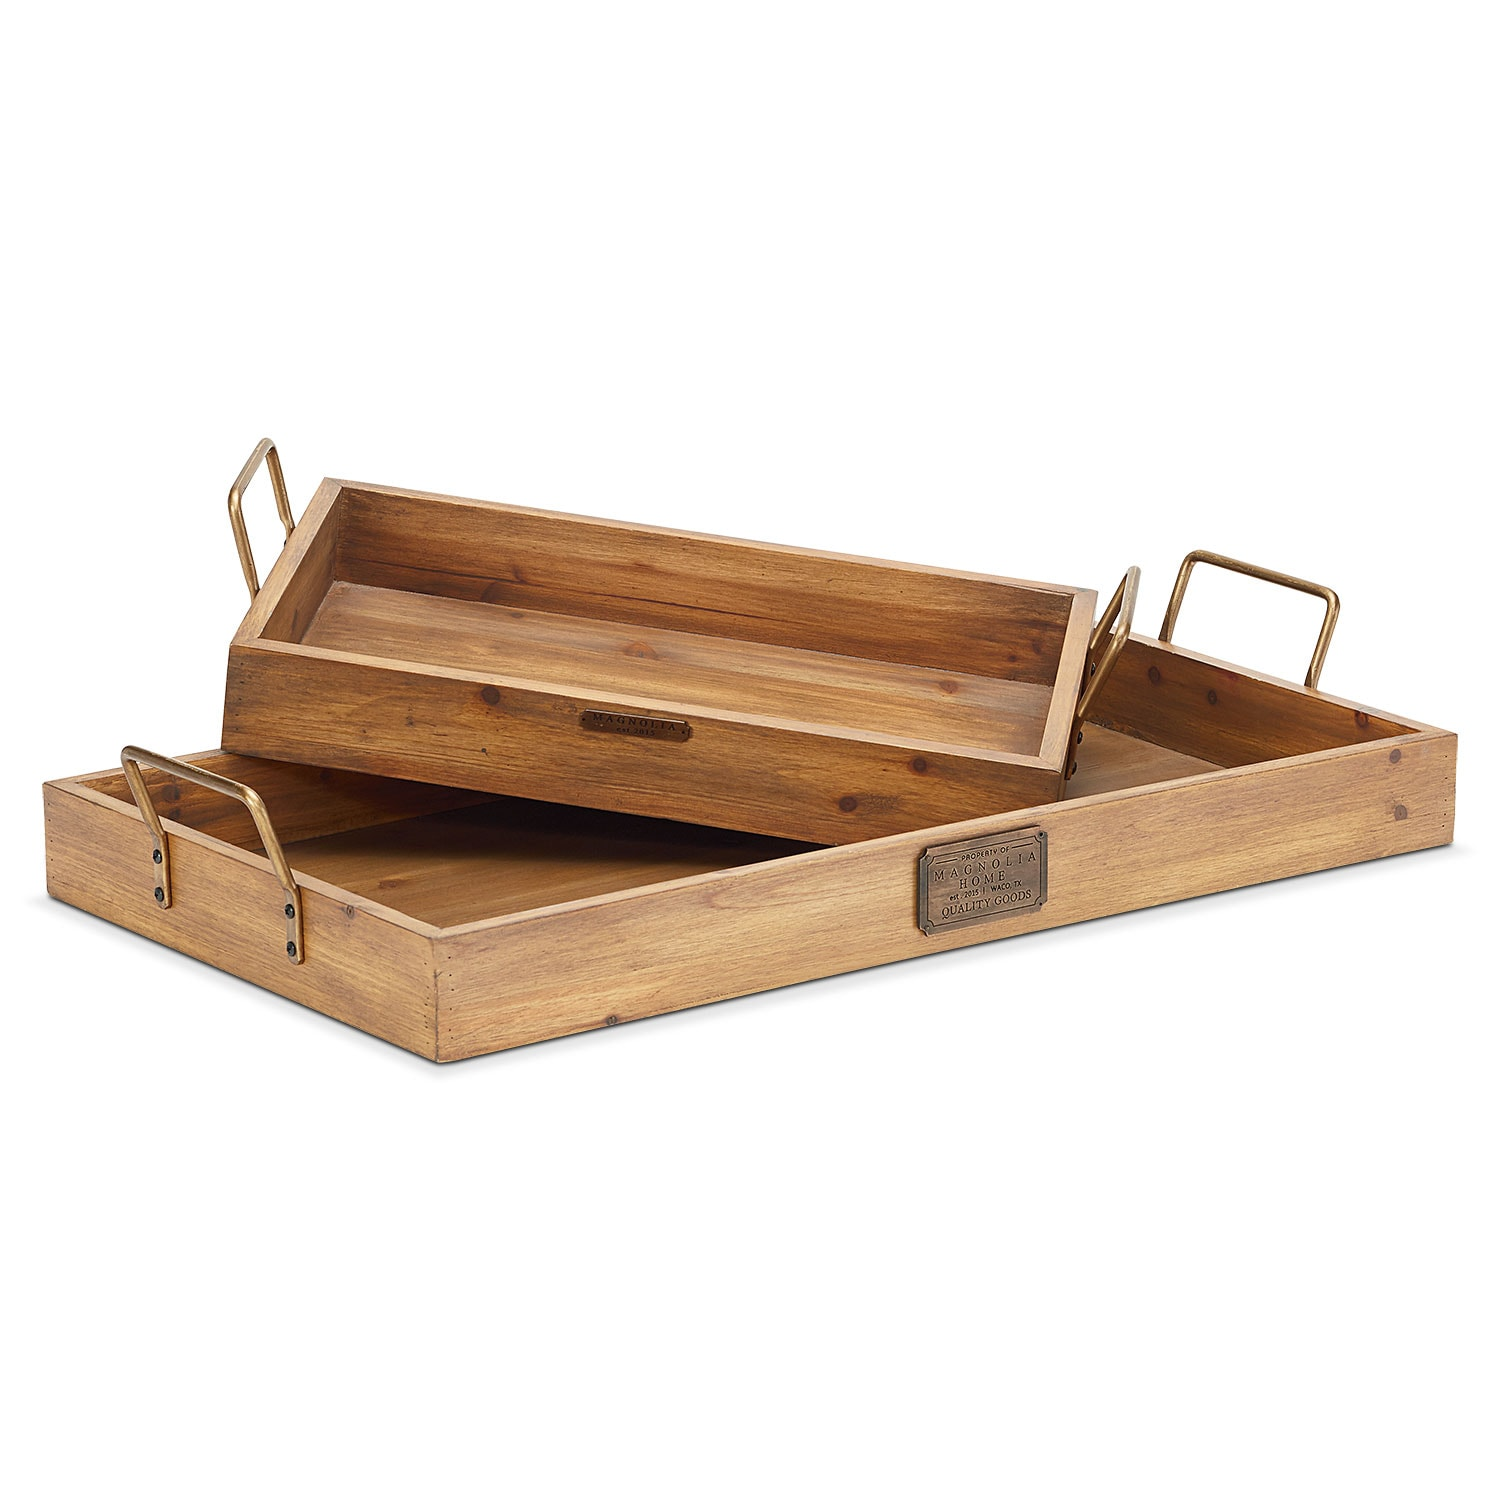 Breakfast Tray Set - Copper Handles